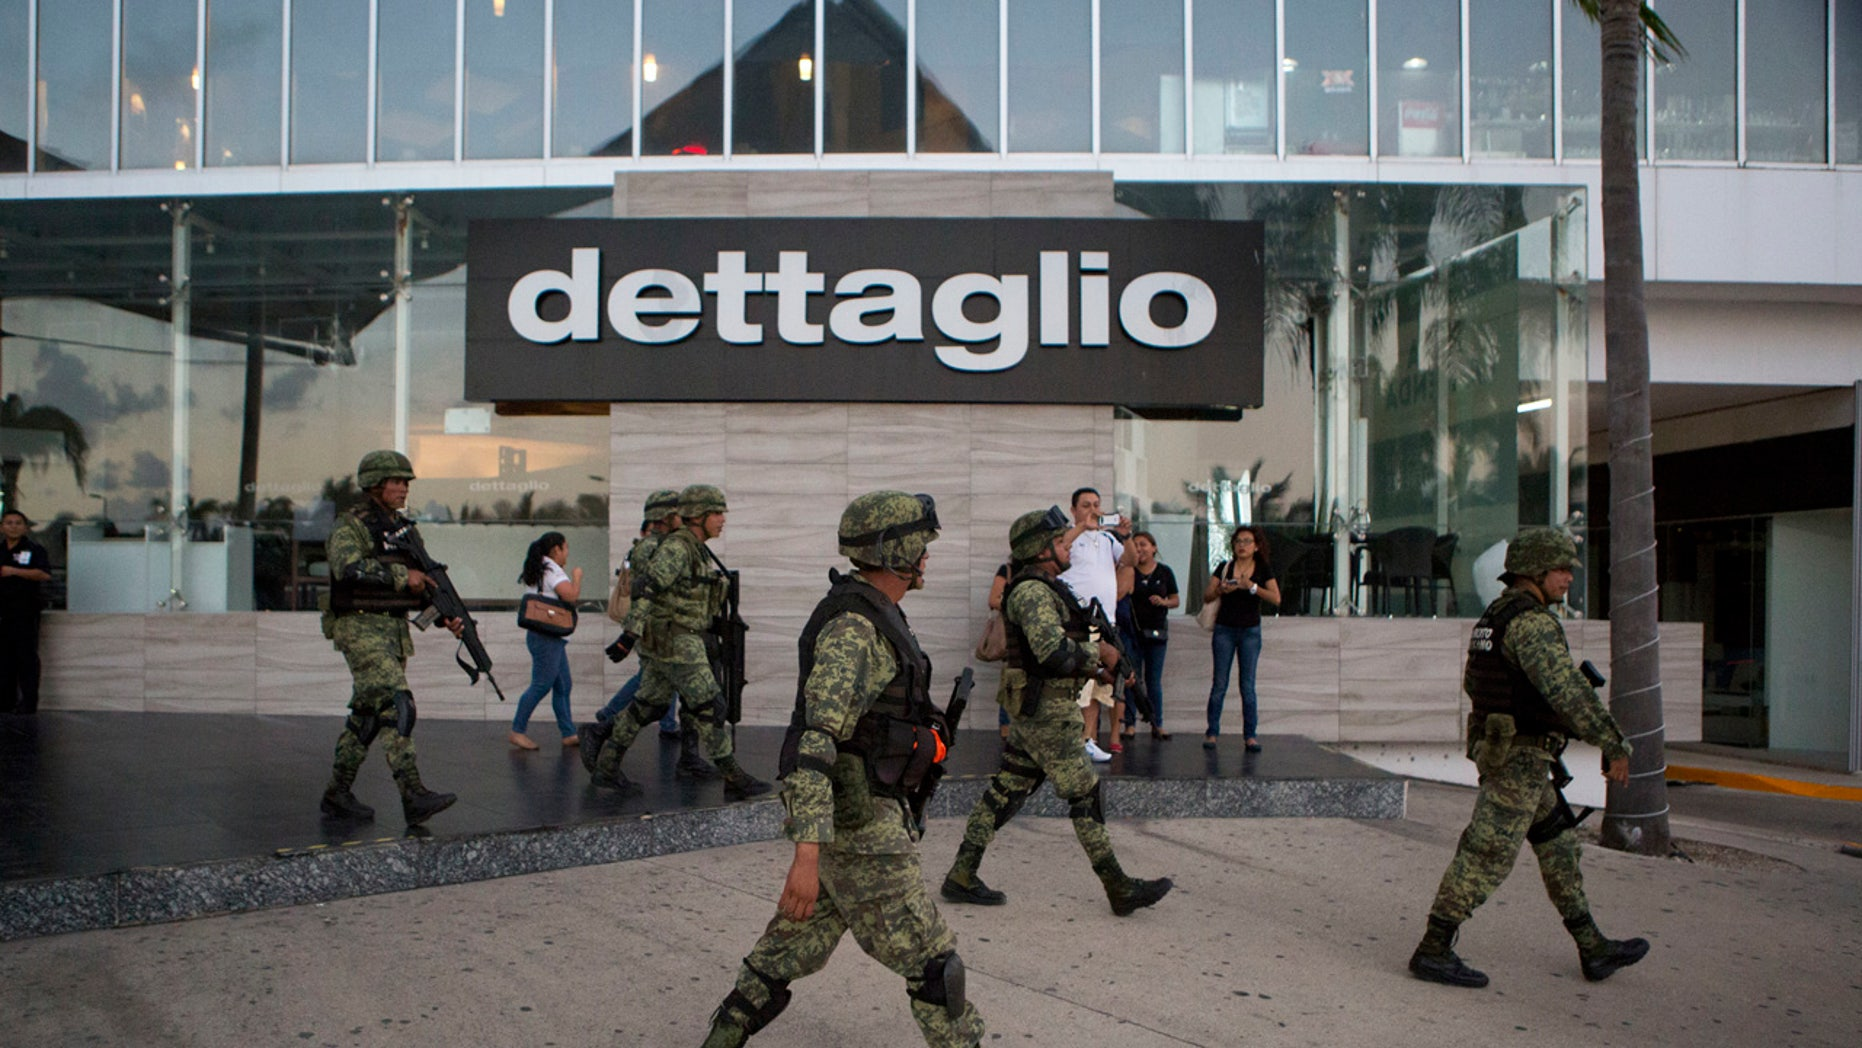 Soldiers walk outside Plaza Las Americas mall following reports of gunfire in Cancun, Mexico, Tuesday, Jan. 17, 2017.